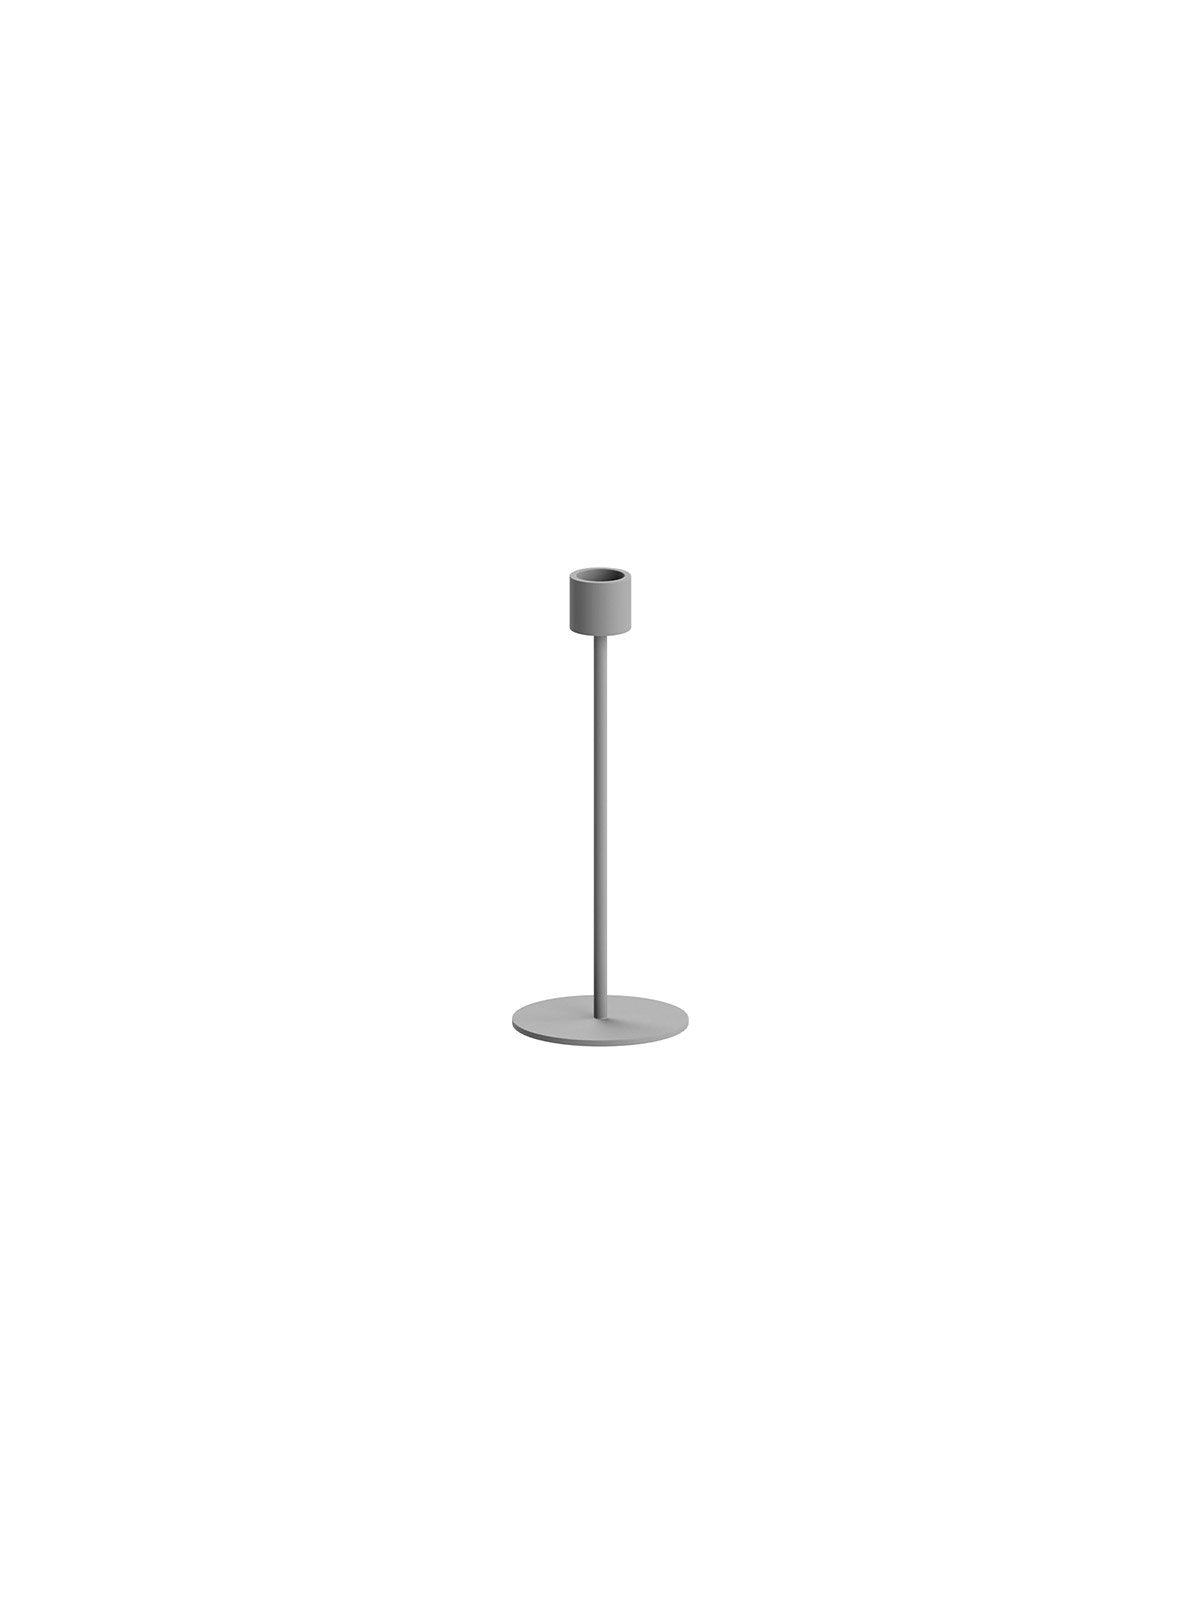 candlestick_small_grey_product1_miljuu.com_1304-014